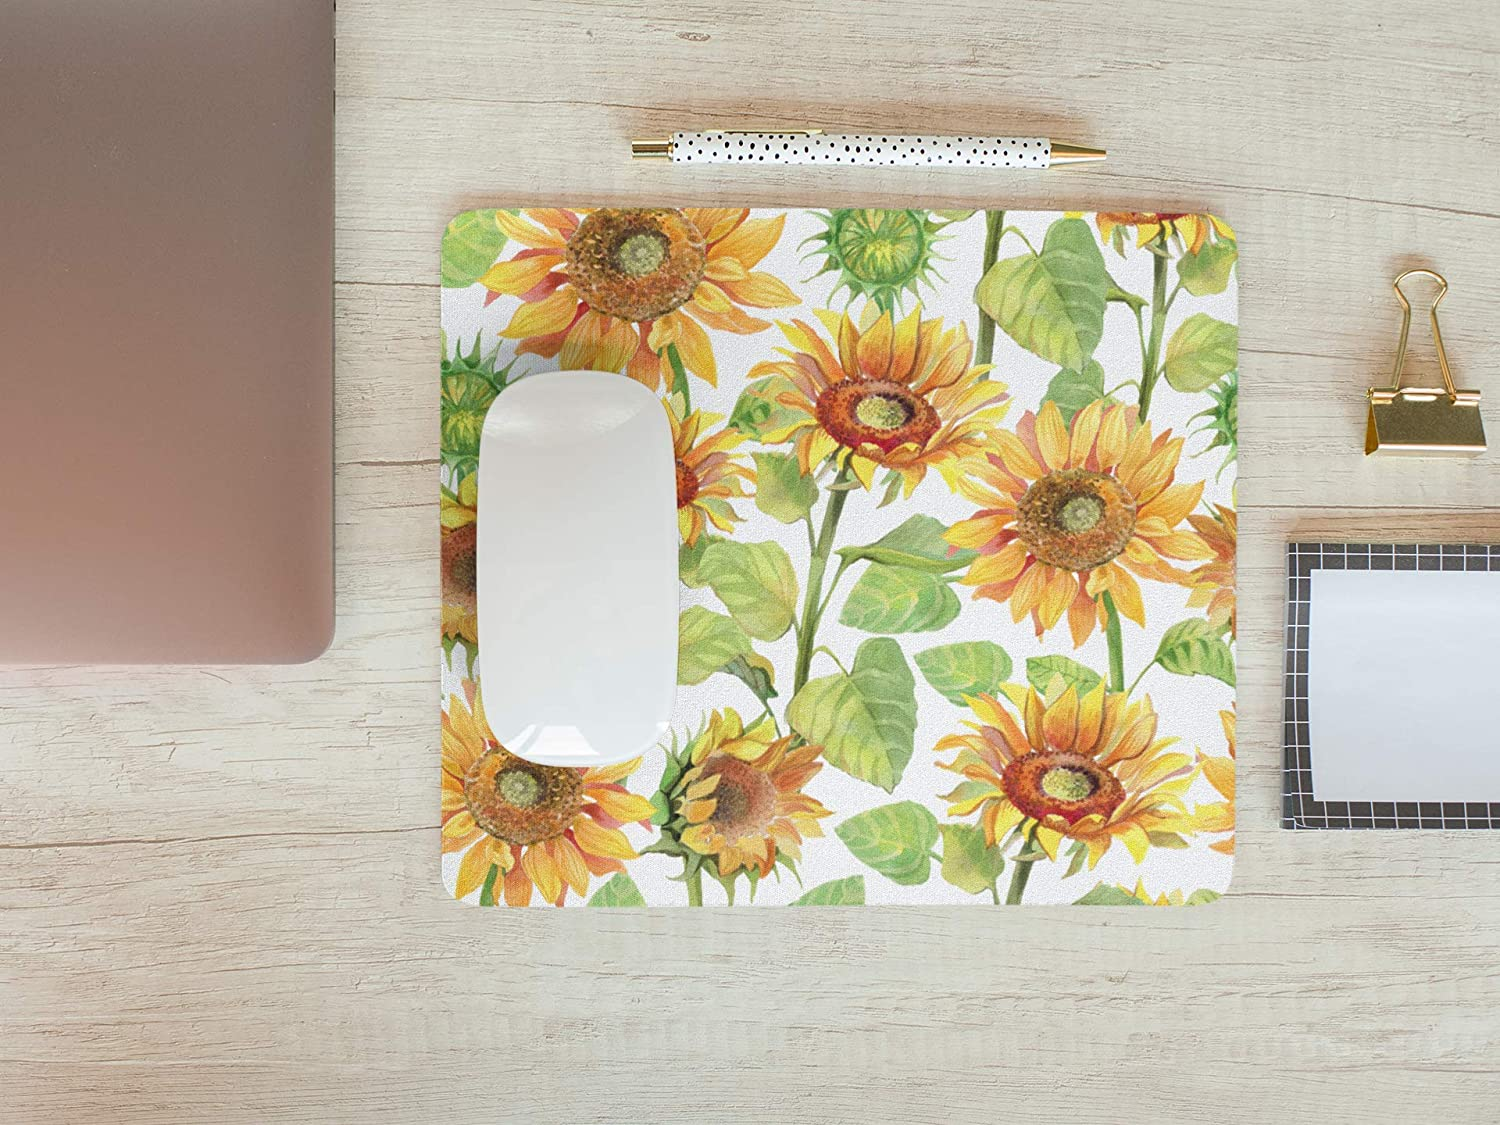 Sunflowers Mouse Pad Floral Mousepad Womens Desk Accessories Office Supplies Cute Yellow Stylish Gift for Coworker Boss A685